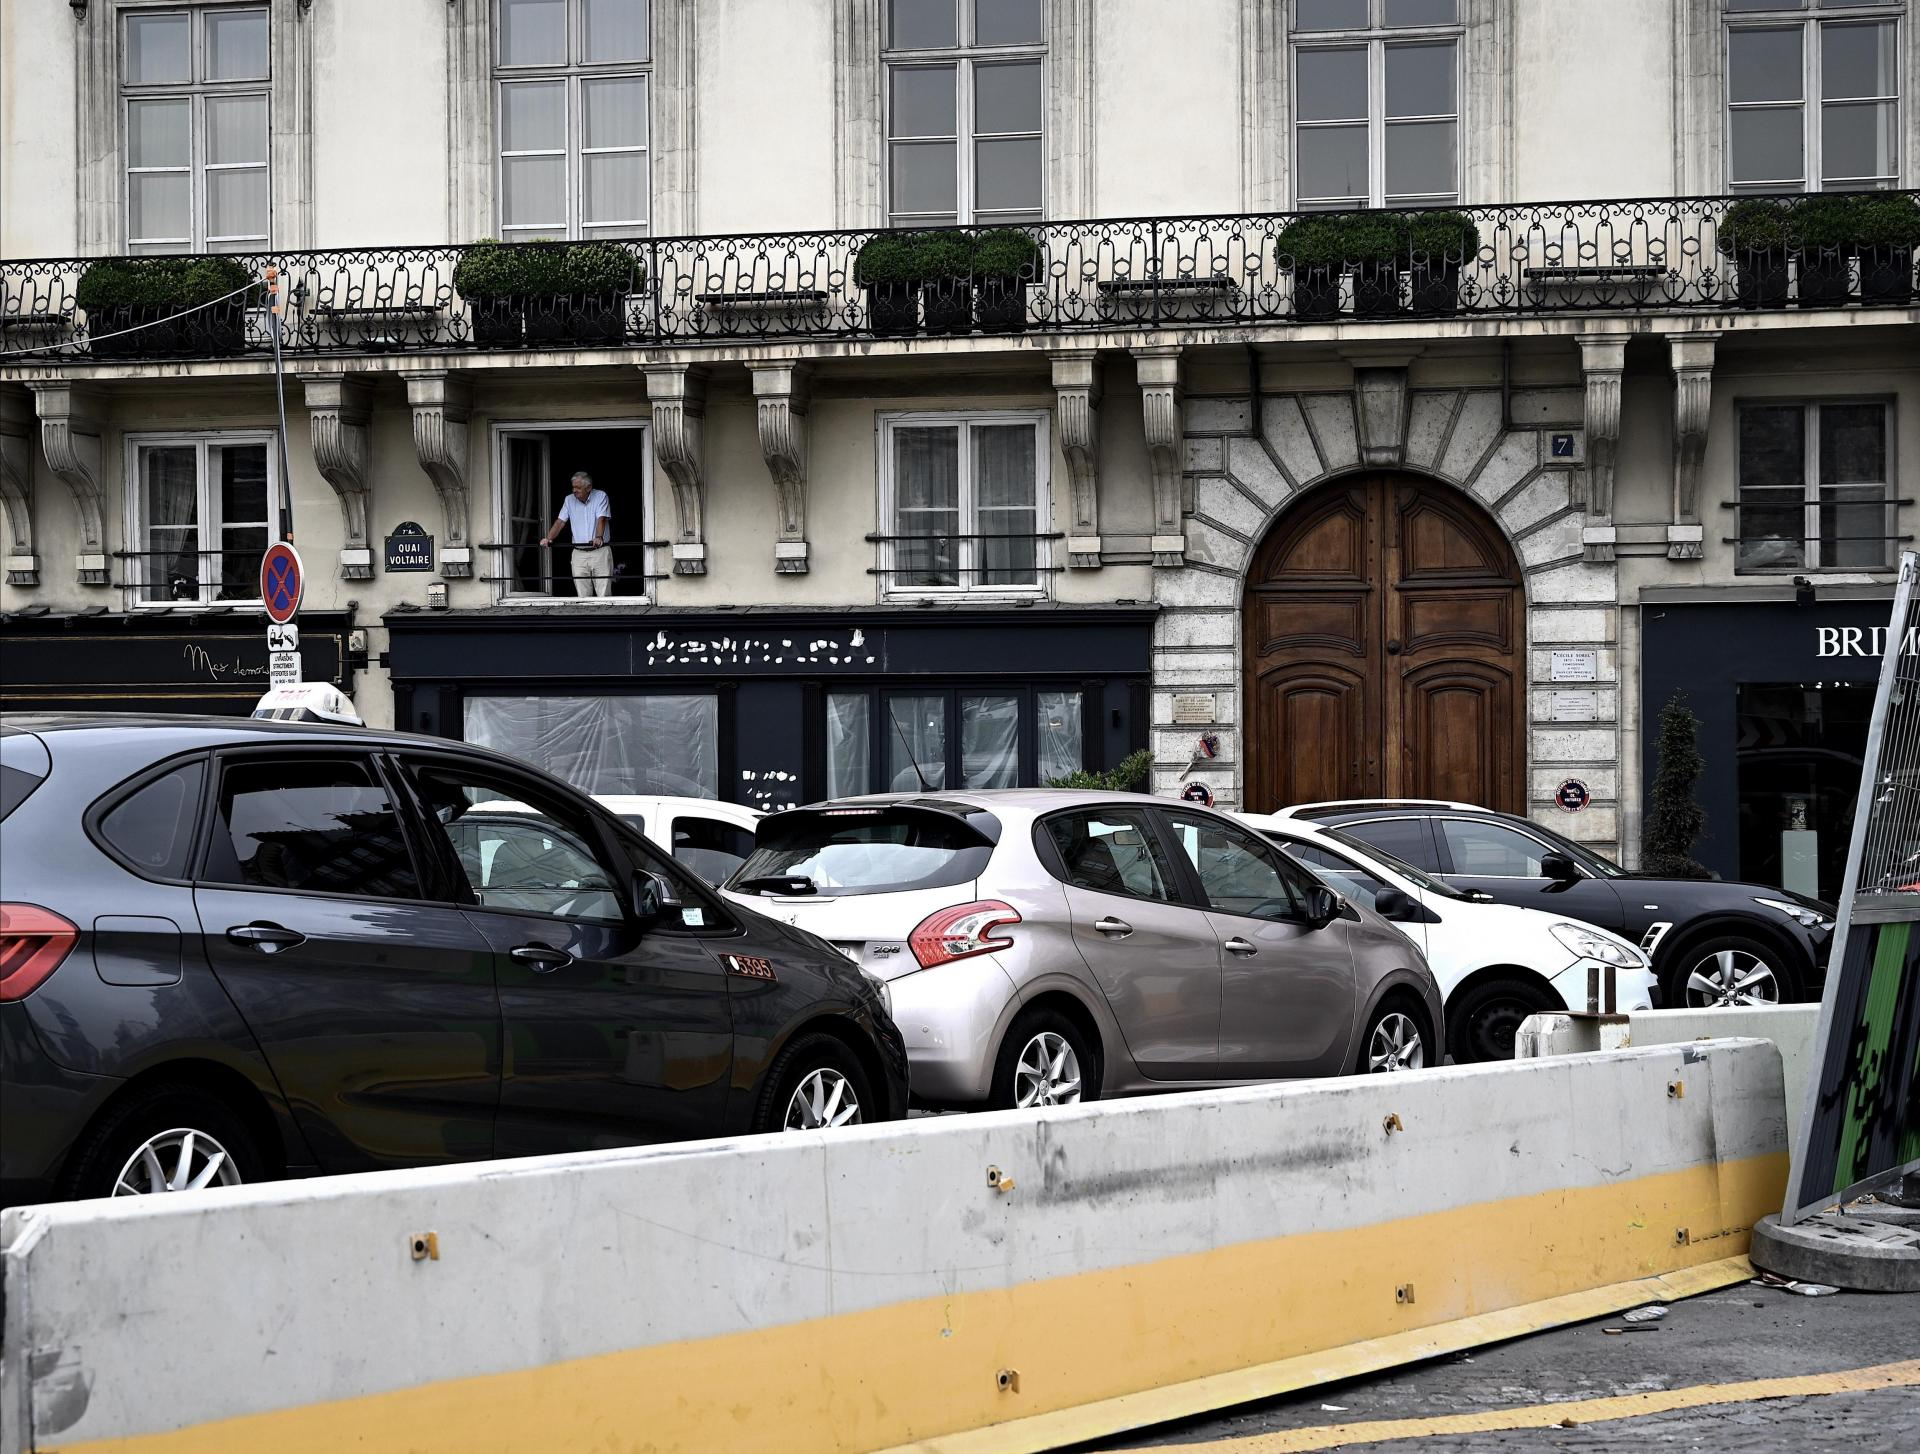 Gridlock has frustrated residents and helped the shift away from cars. Photo: AFP